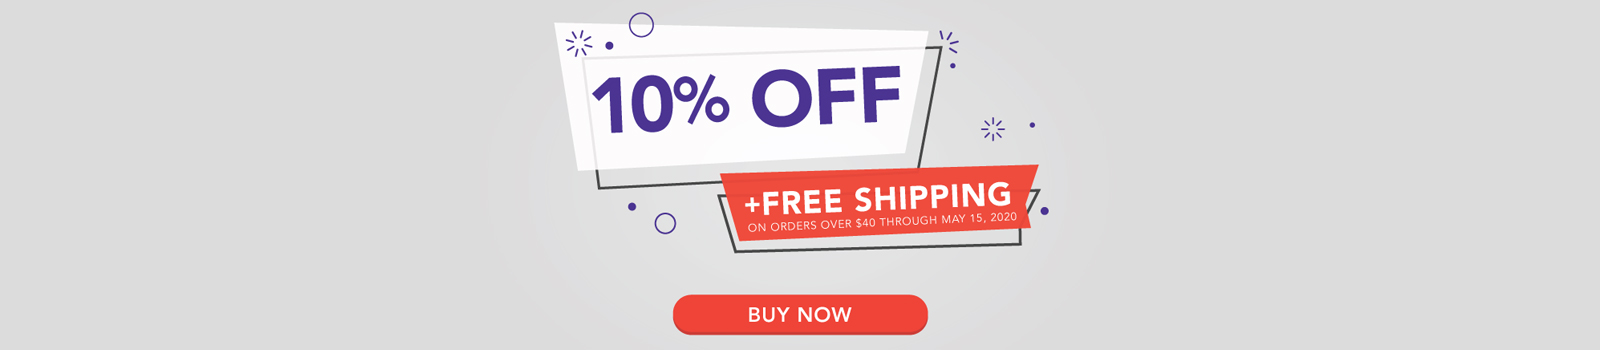 Cosamin 10% off and Free Shipping medium banner